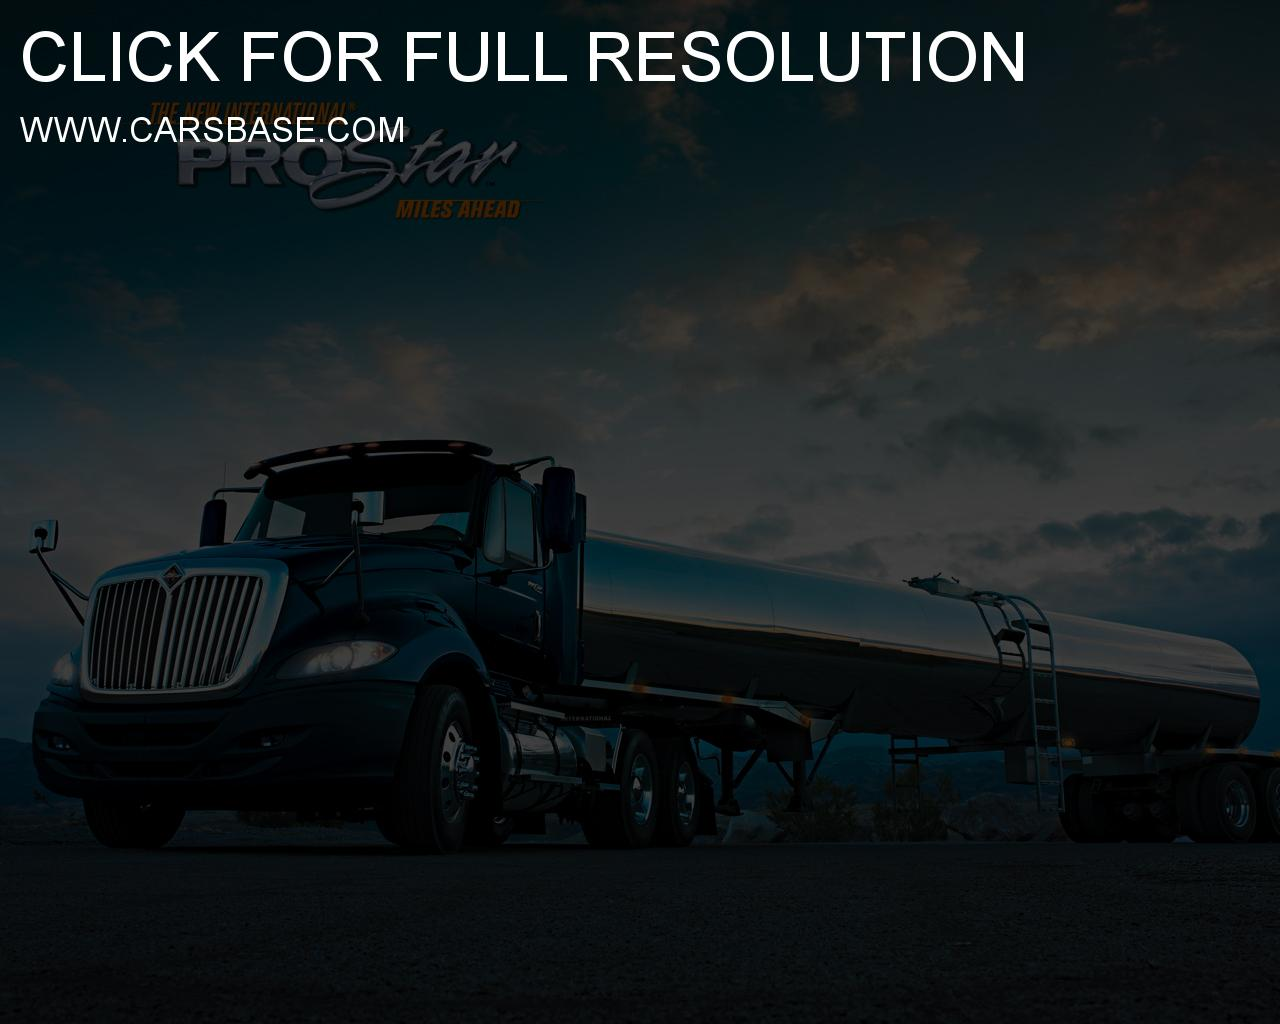 International prostar photo - 4